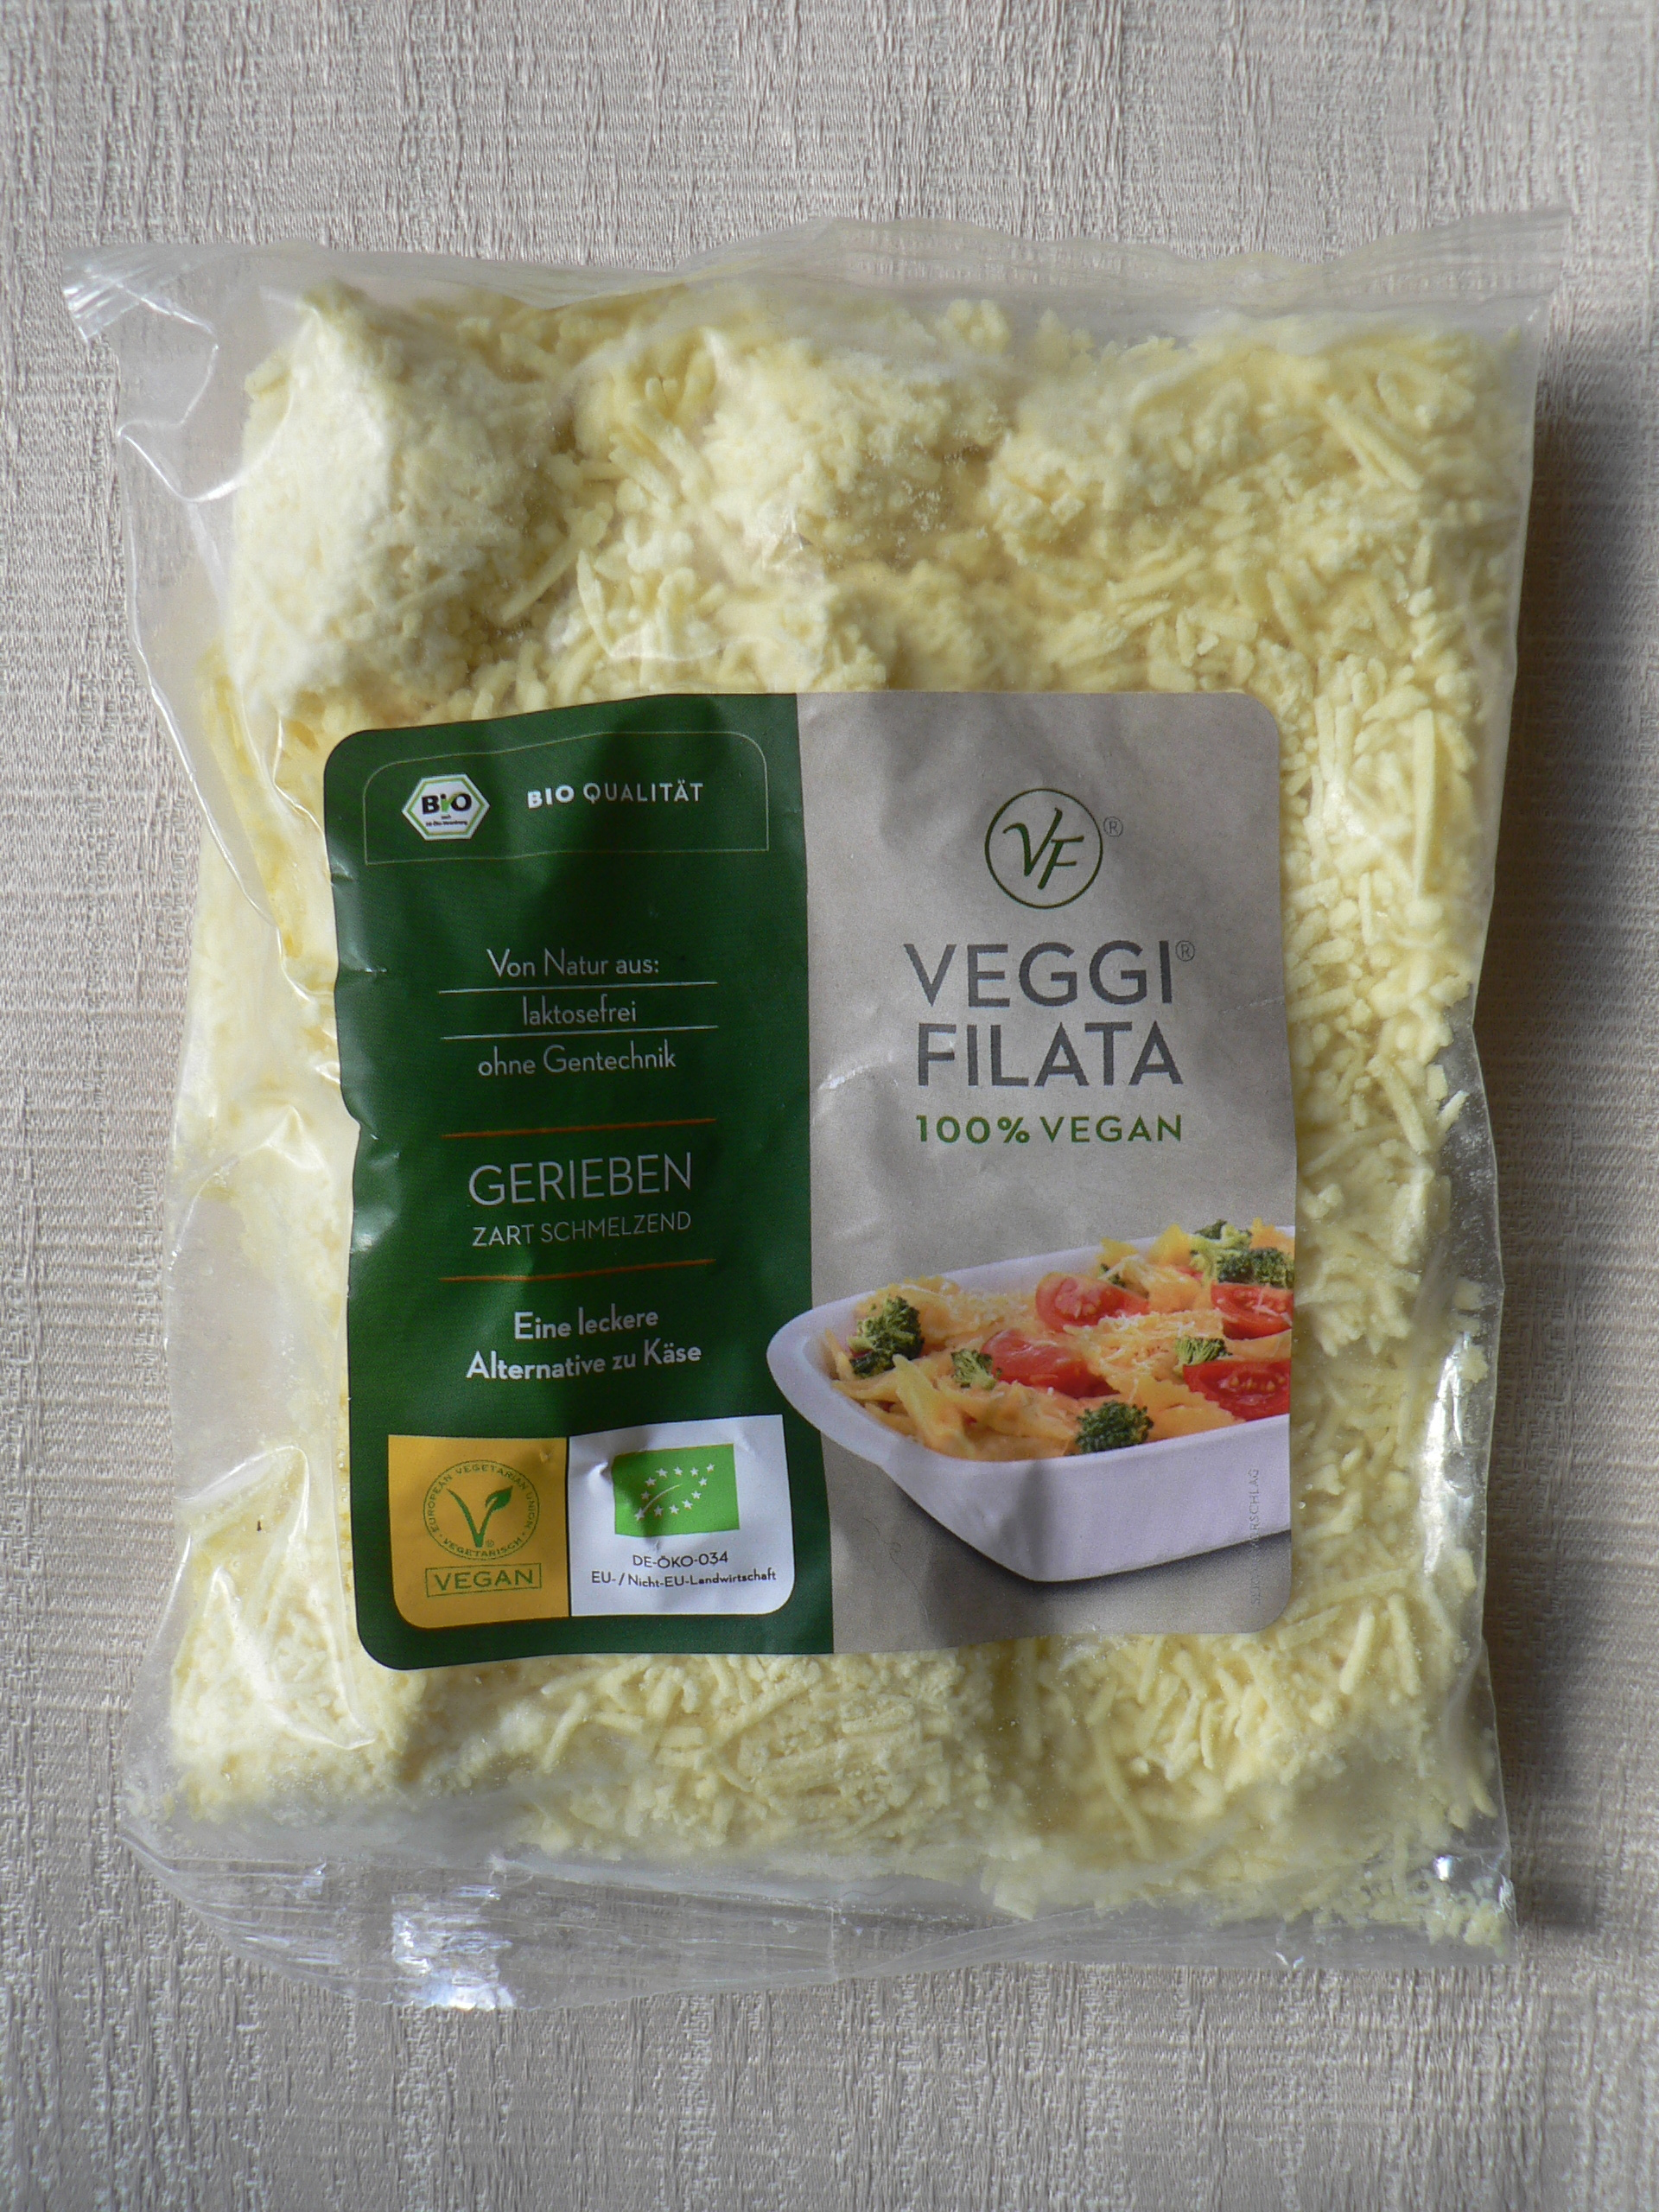 https://veganstuffinbelgium.files.wordpress.com/2016/05/veggi-filata-cheese.jpg